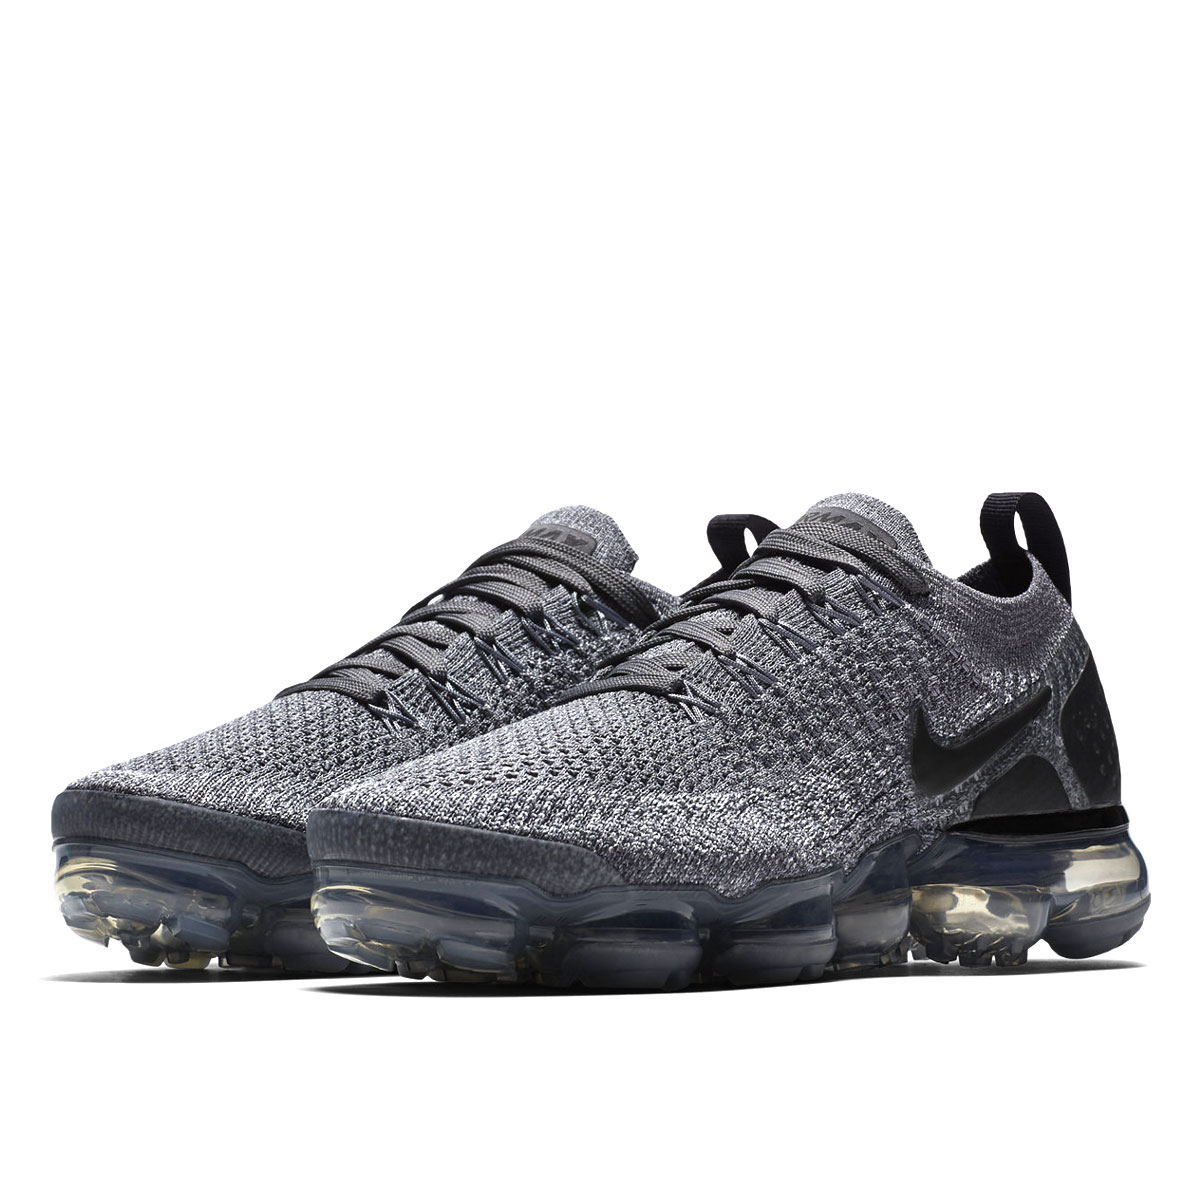 f29a868eca0 NIKE WMNS AIR VAPORMAX FLYKNIT 2 Nike women vapor max fried food knit DARK  GREY WOLF GREY 942